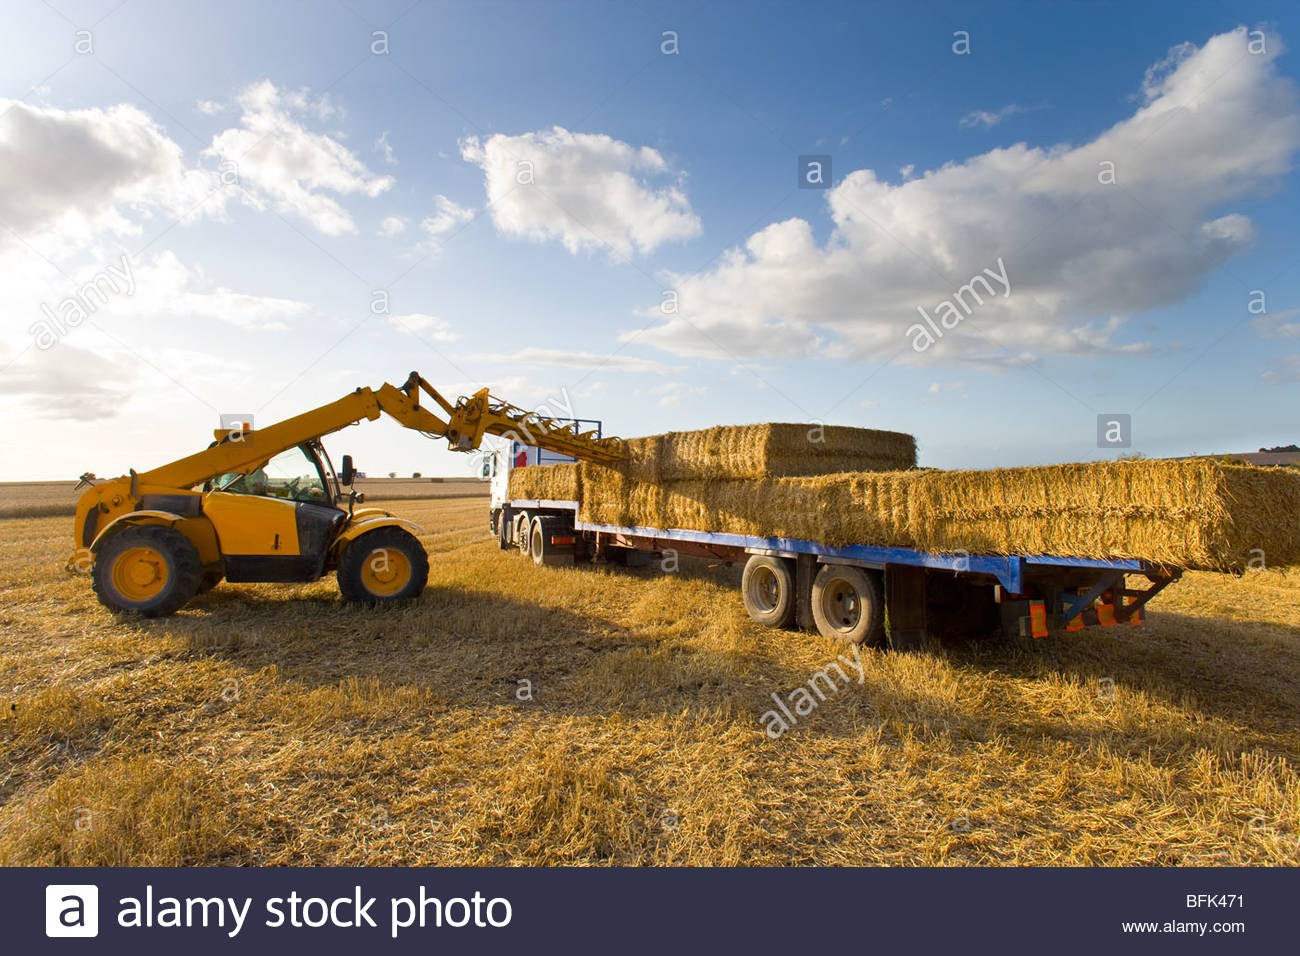 Tractor loading straw bales onto truck in sunny rural field - Stock Image